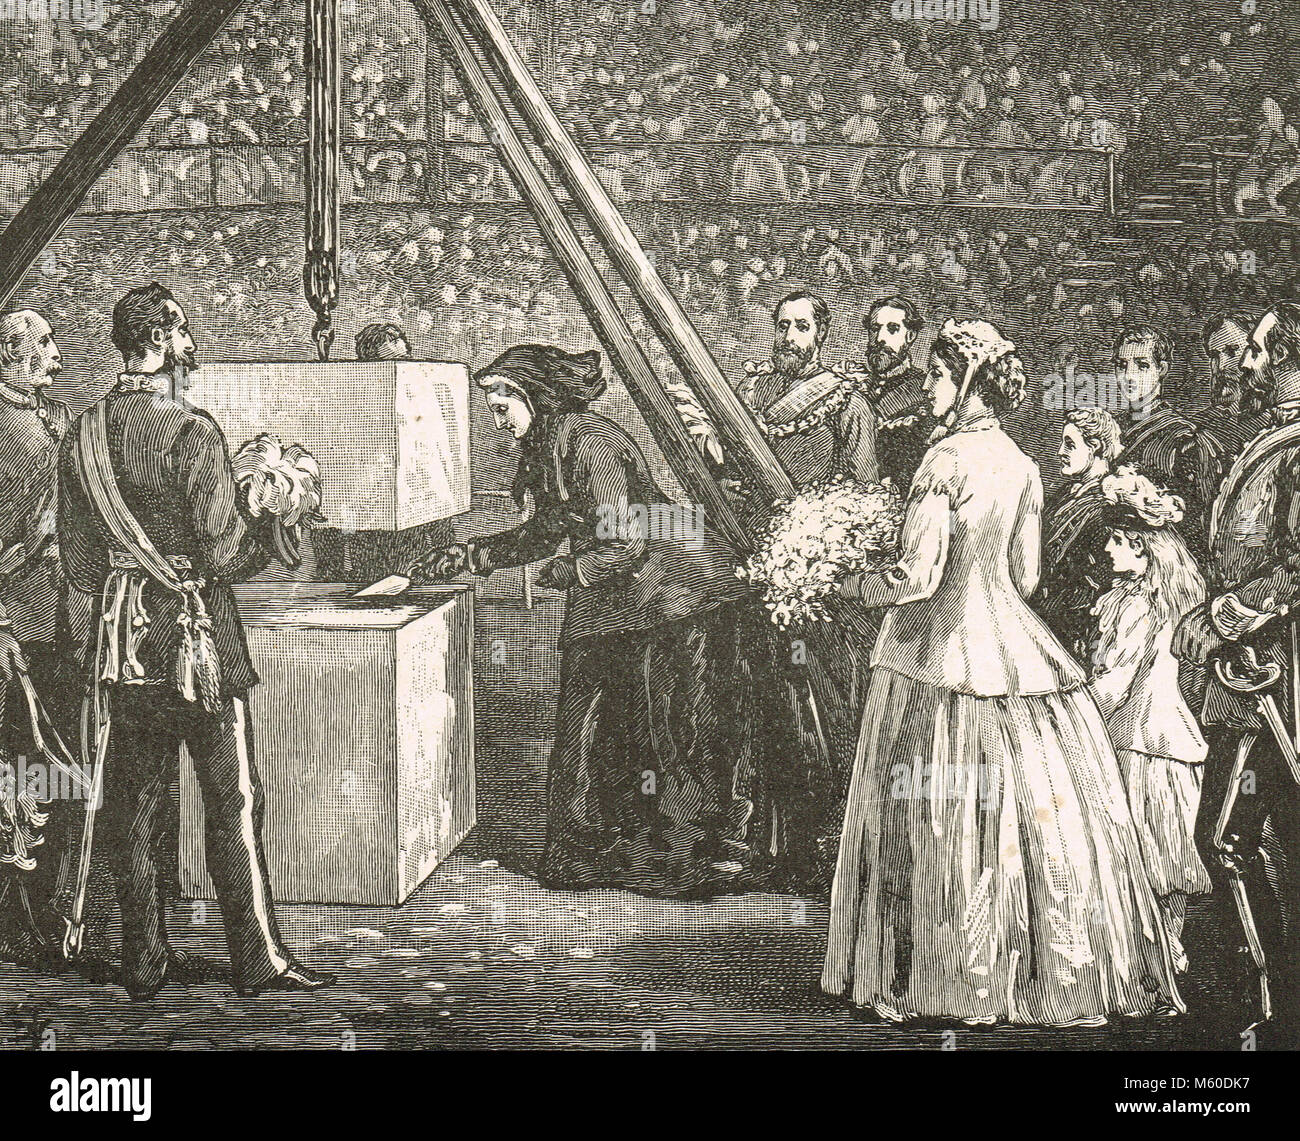 Queen Victoria laying the Foundation stone, Royal Albert Hall, 20 May 1867 - Stock Image